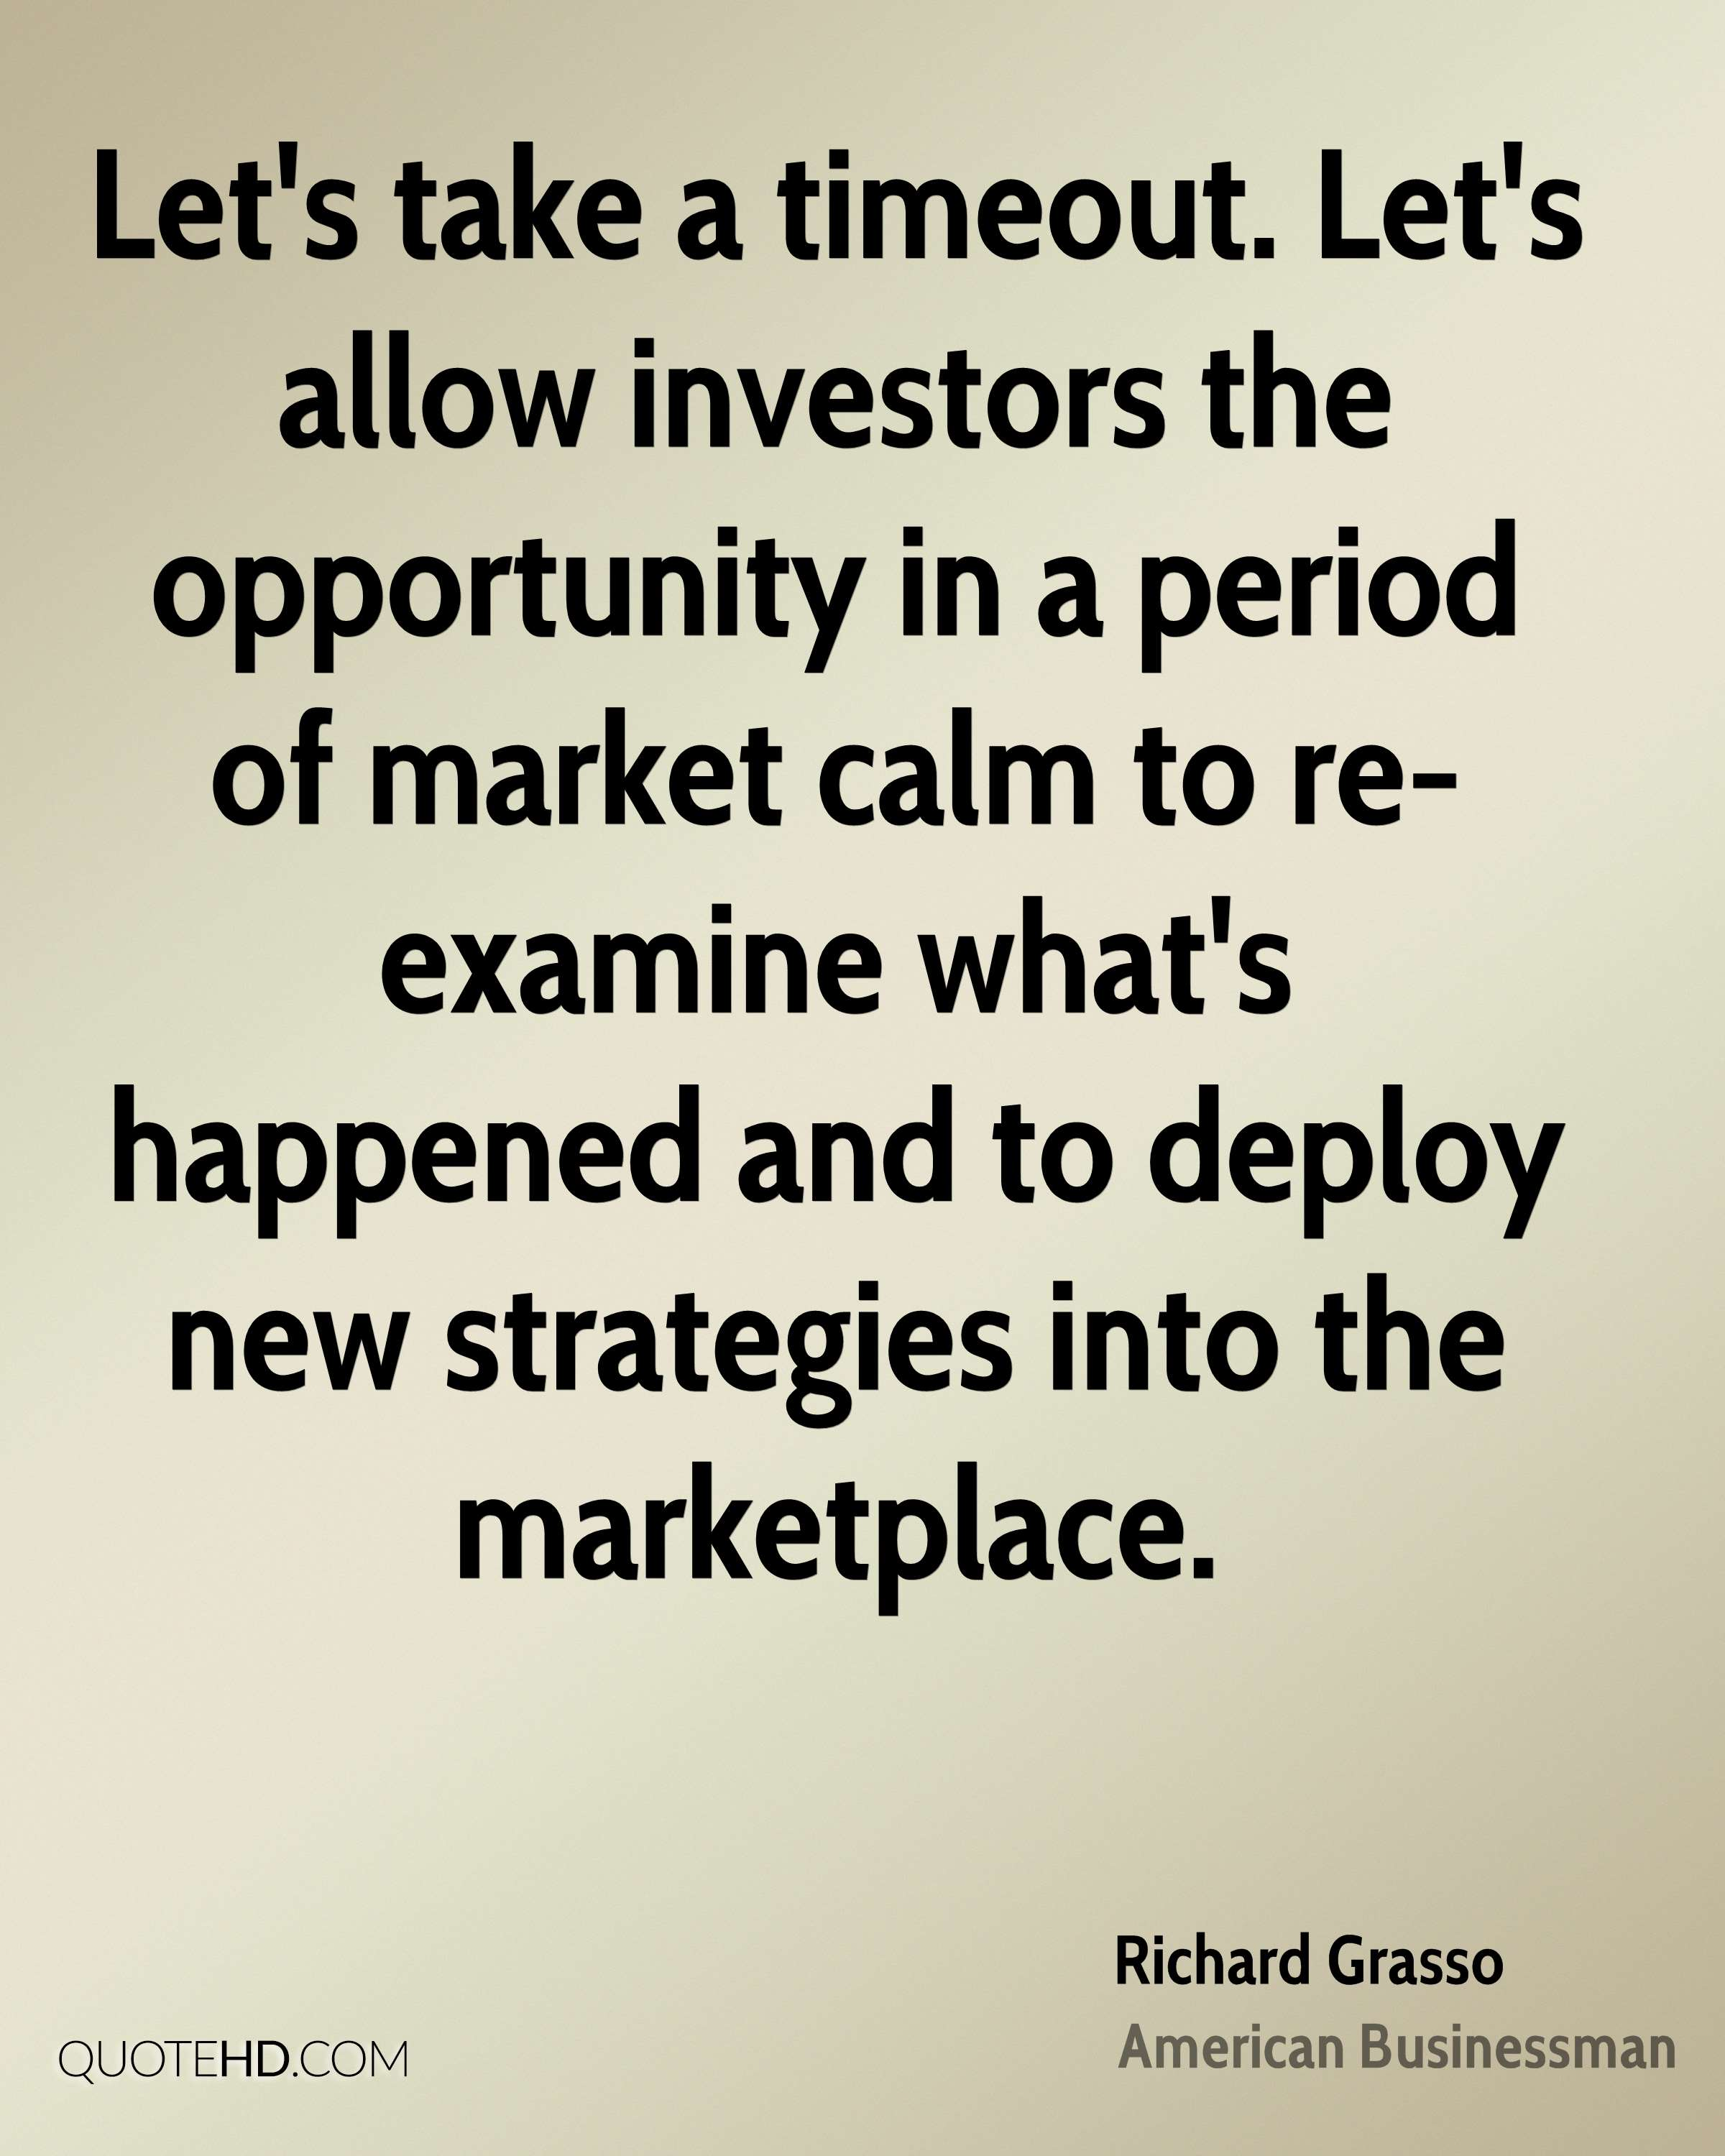 Let's take a timeout. Let's allow investors the opportunity in a period of market calm to re-examine what's happened and to deploy new strategies into the marketplace.